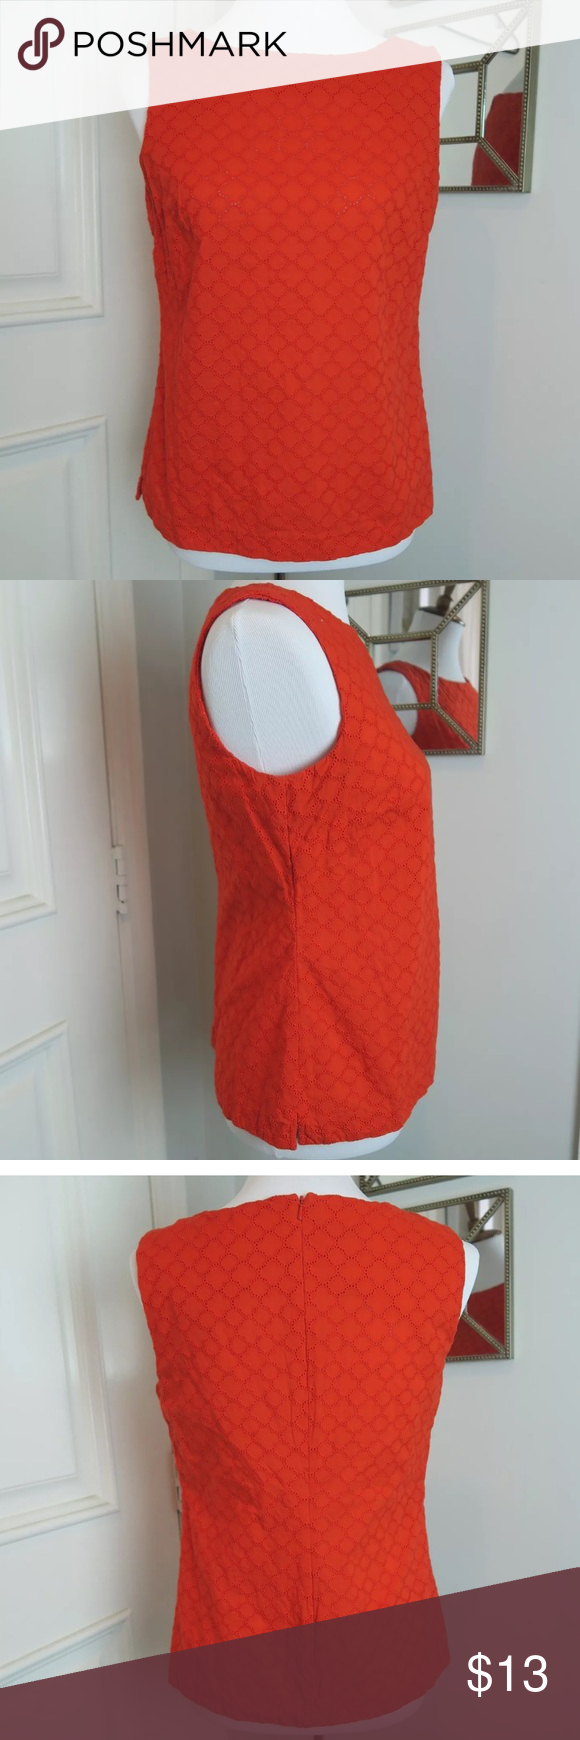 Talbots Sleeveless Top Beautiful and bright colored sleeveless top with concealed zipper closure on back. Perfect for the upcoming summer days. Talbots Tops